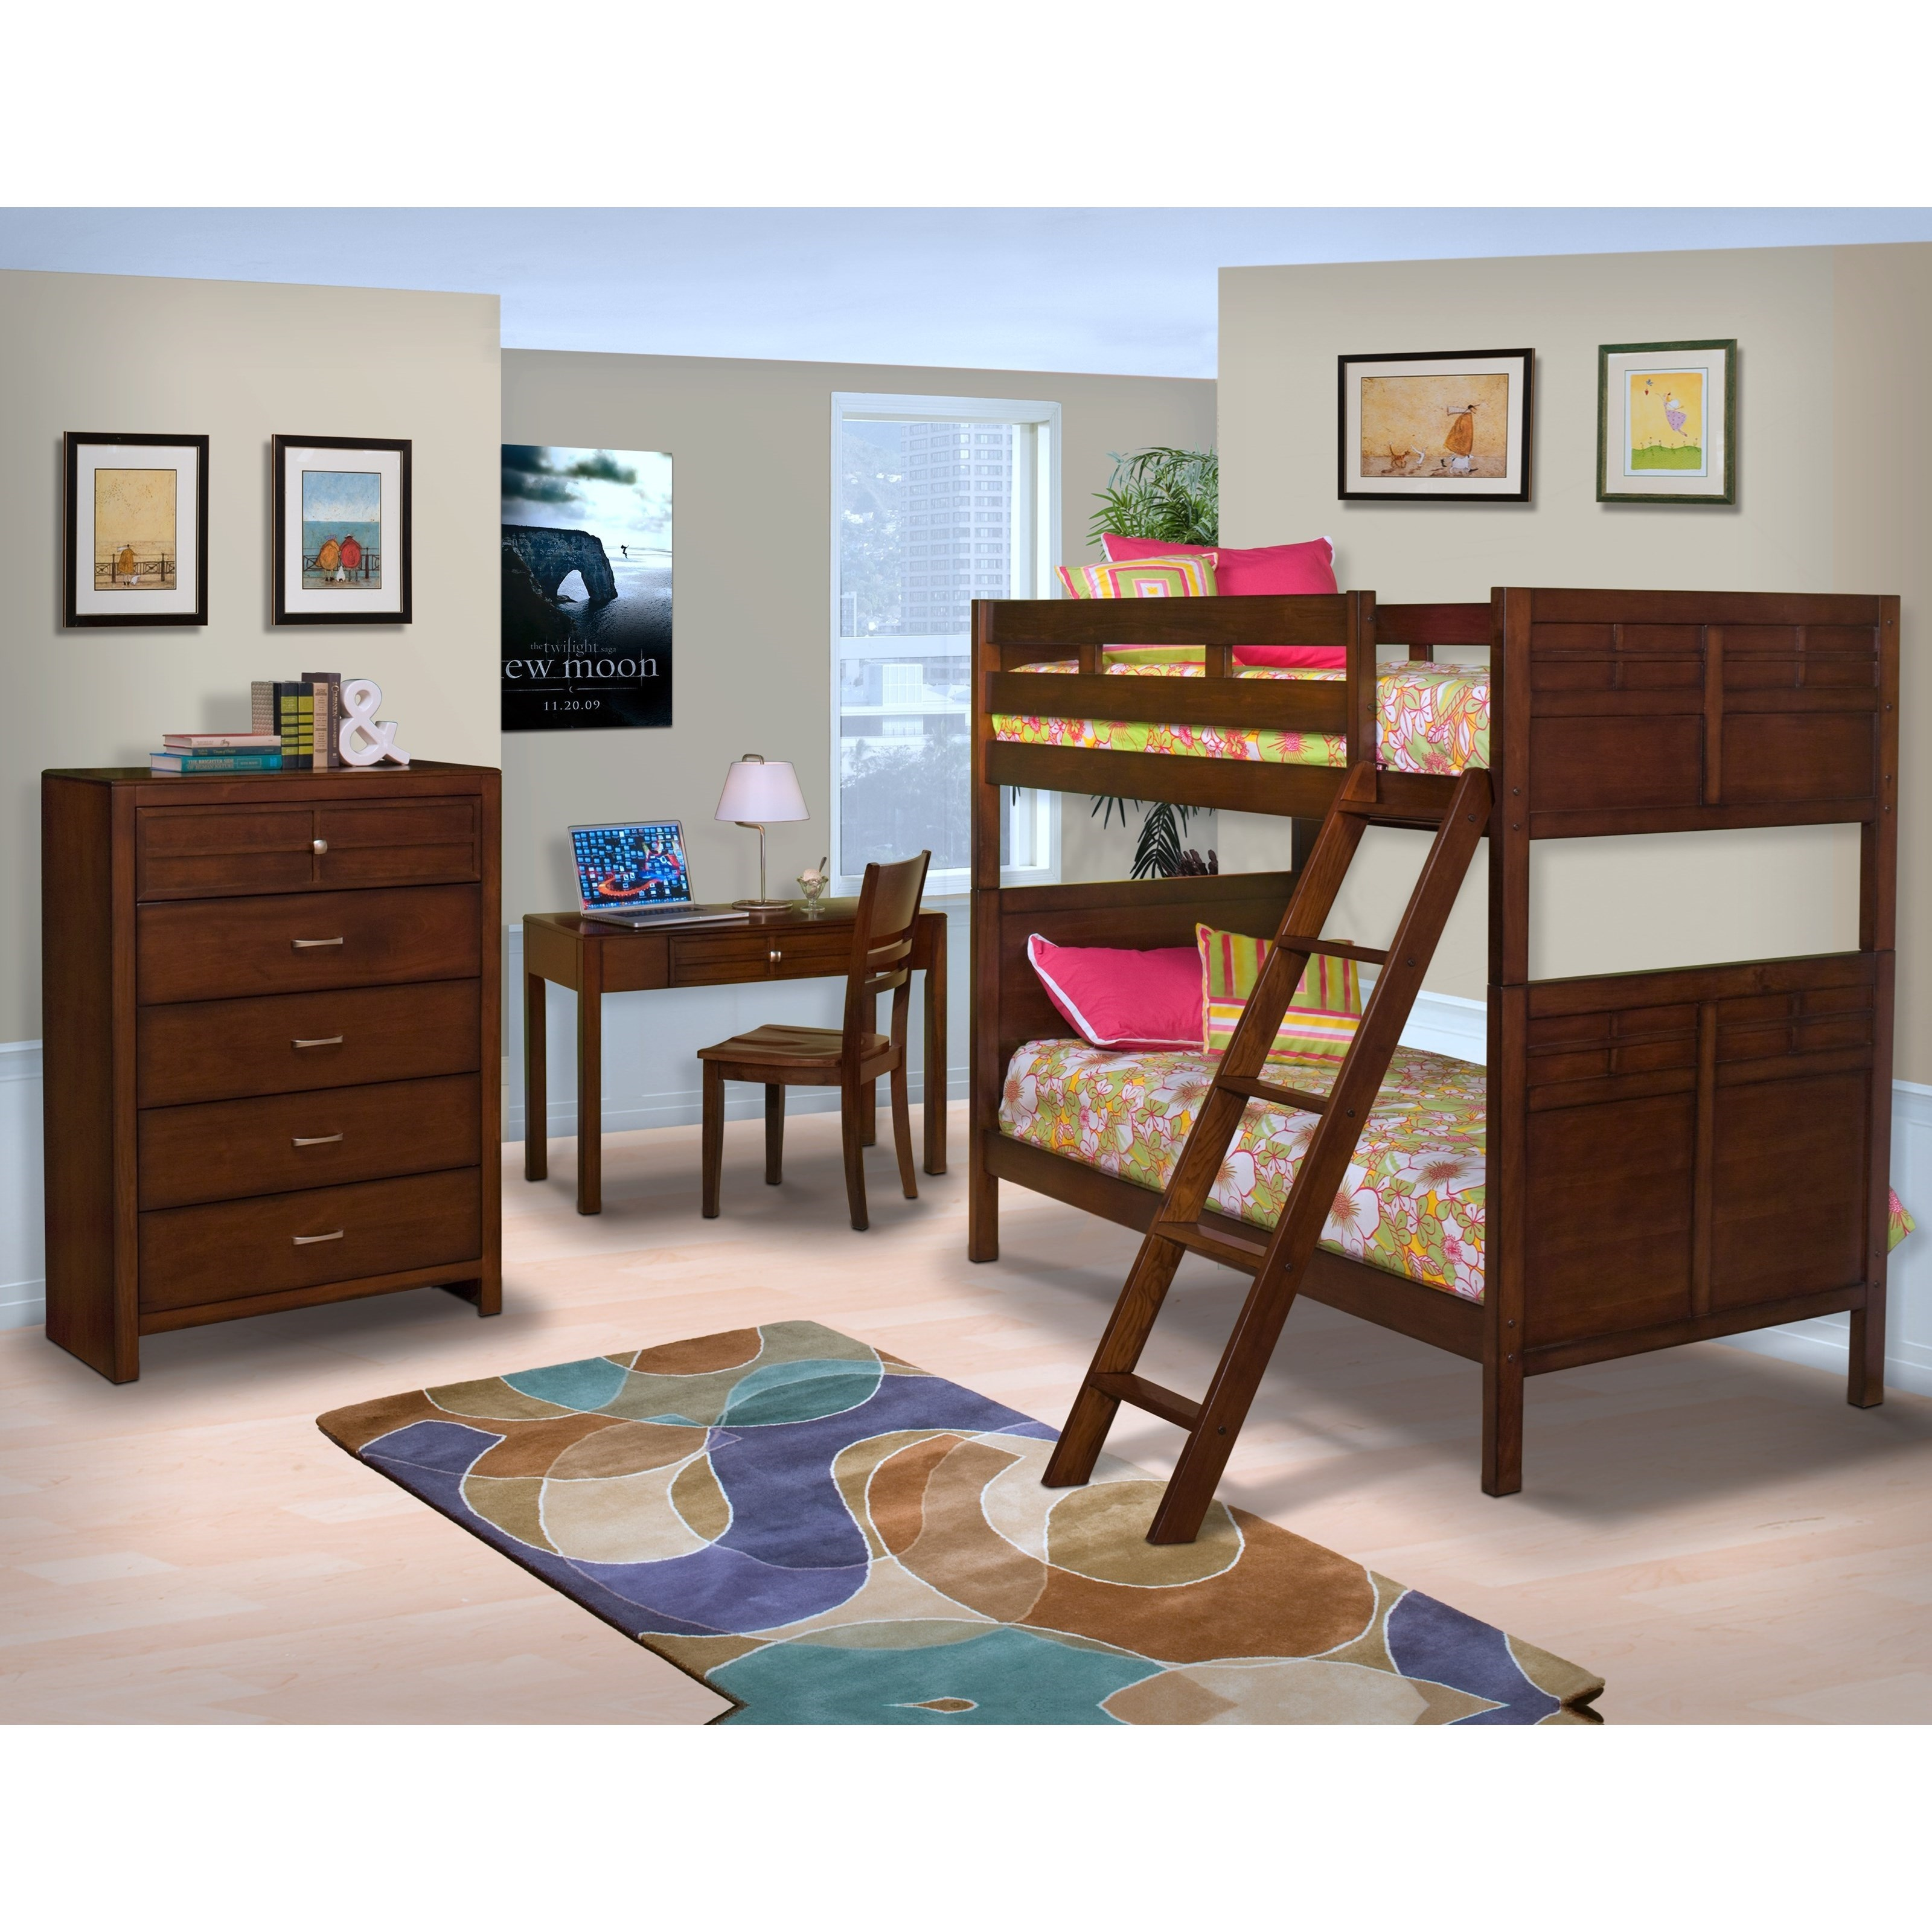 Twin/Full Bunk Bed Bedroom Group